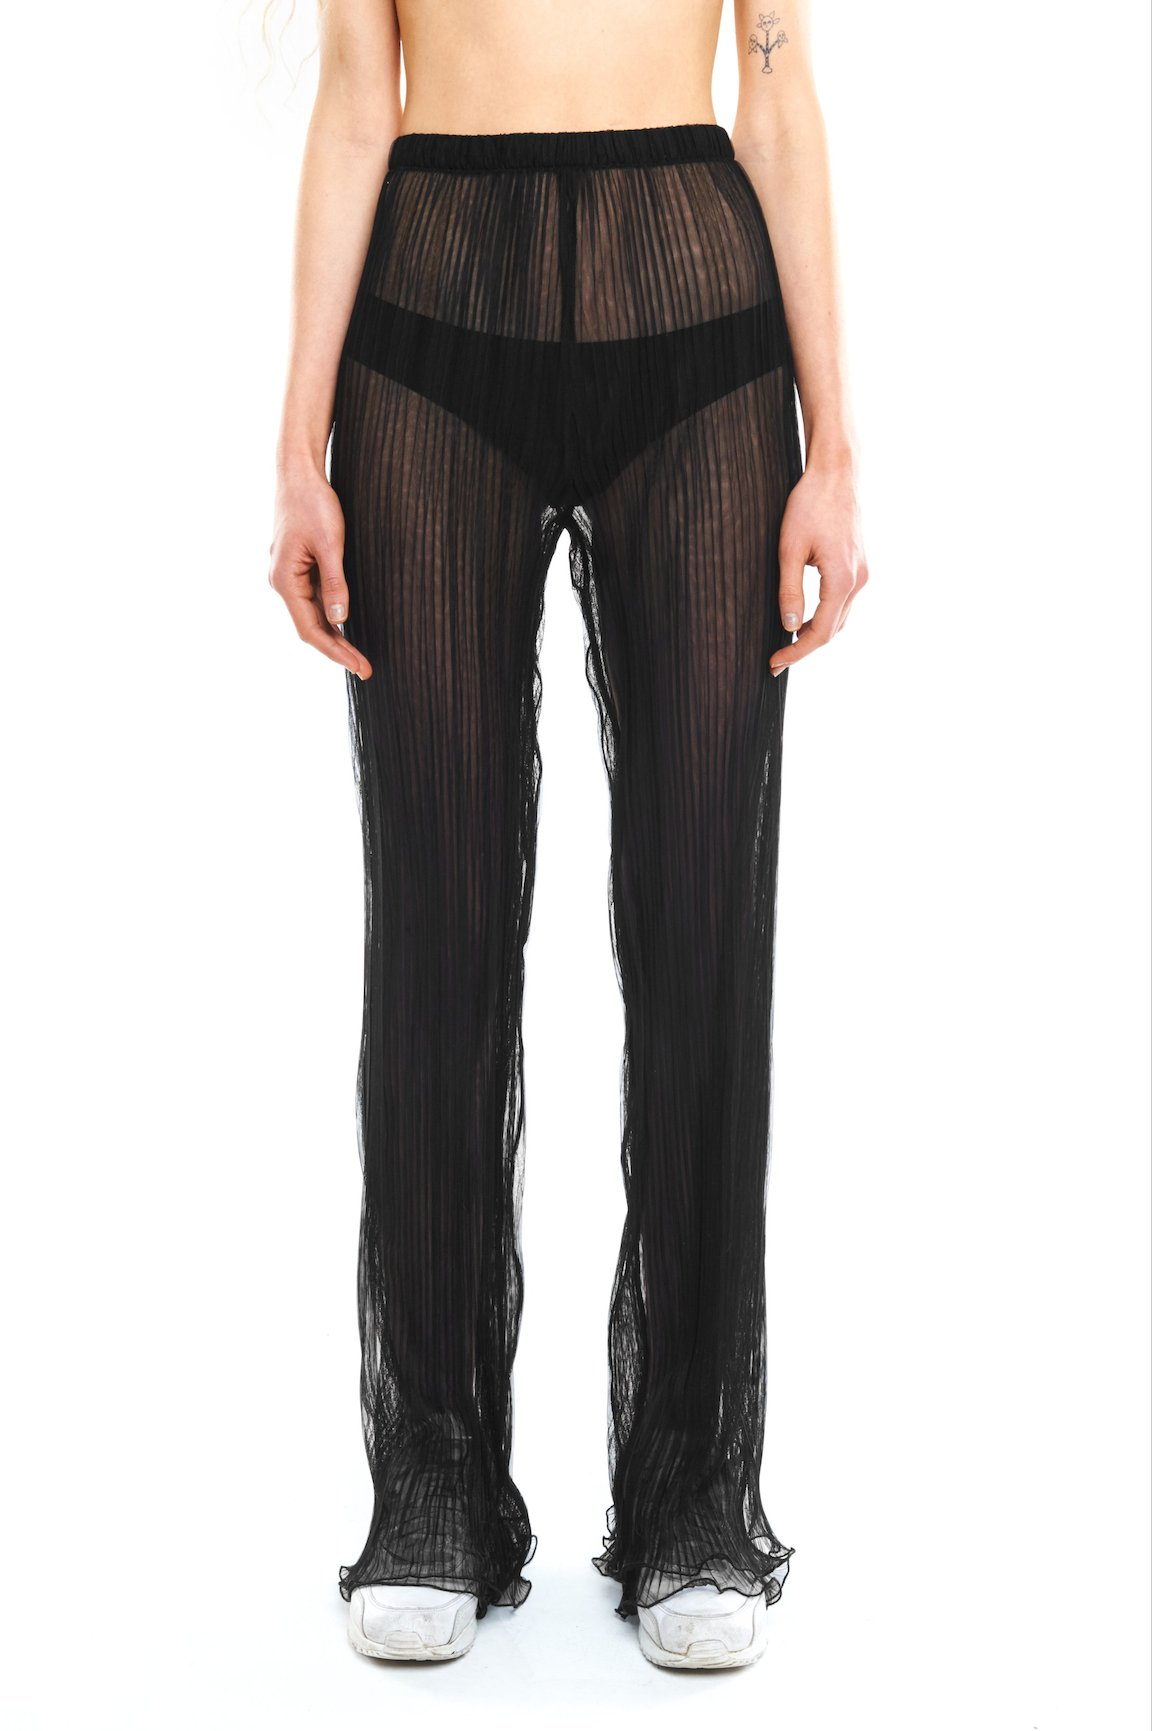 Cotton Pleated Seamless Trousers: Black